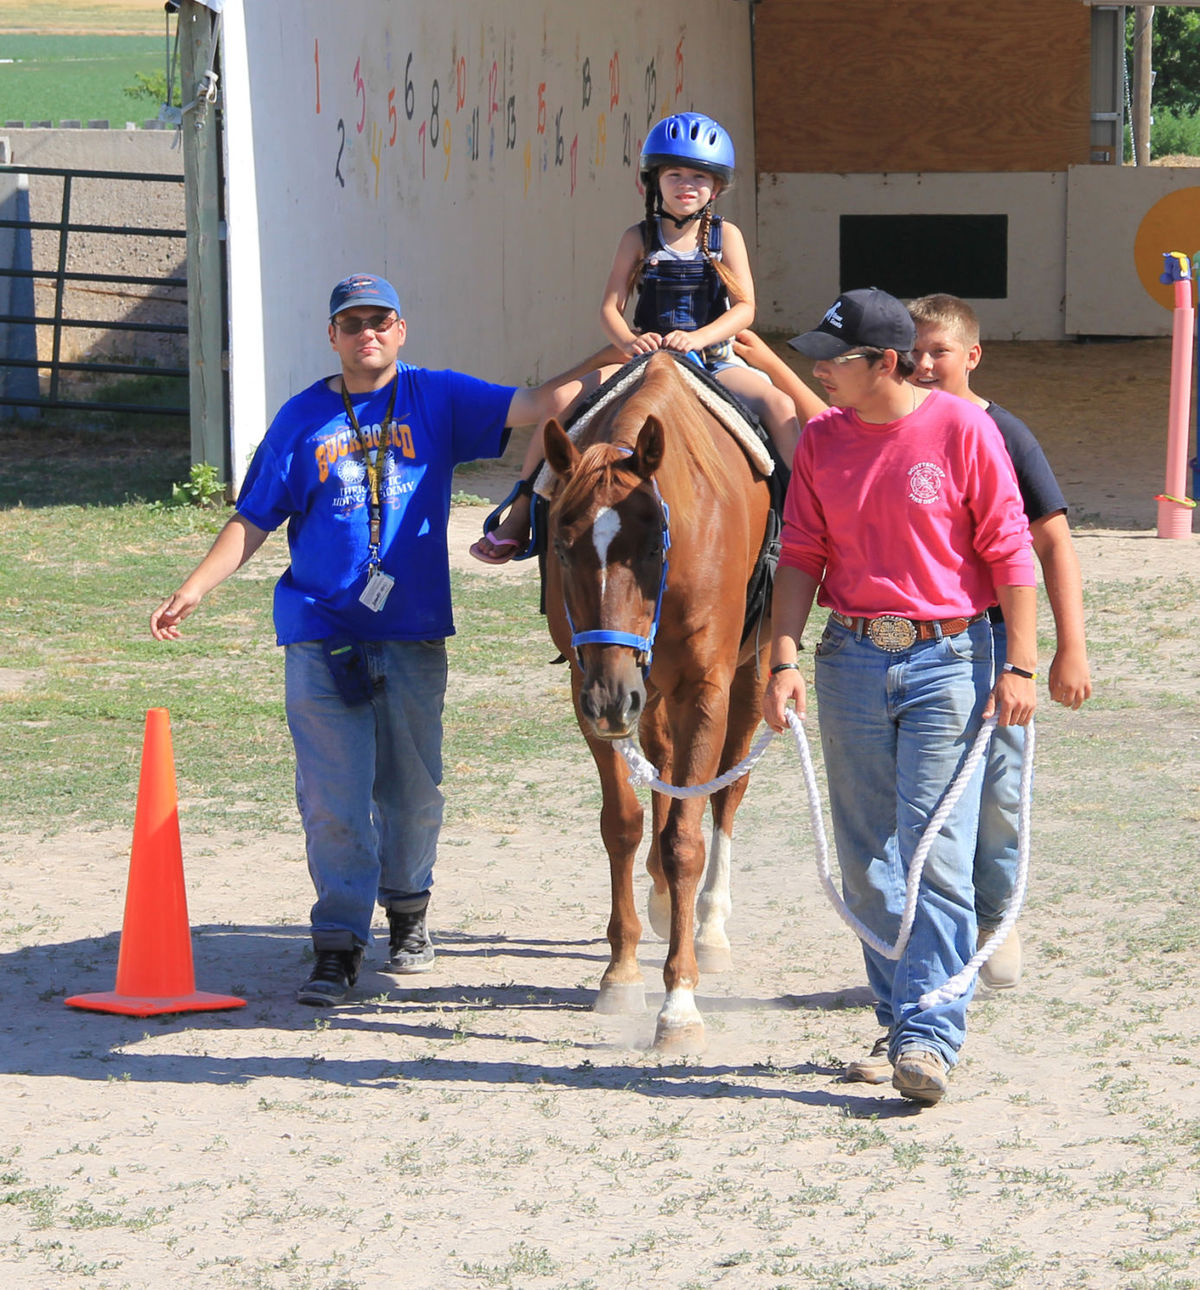 Buckboard Therapeutic Riding Academy